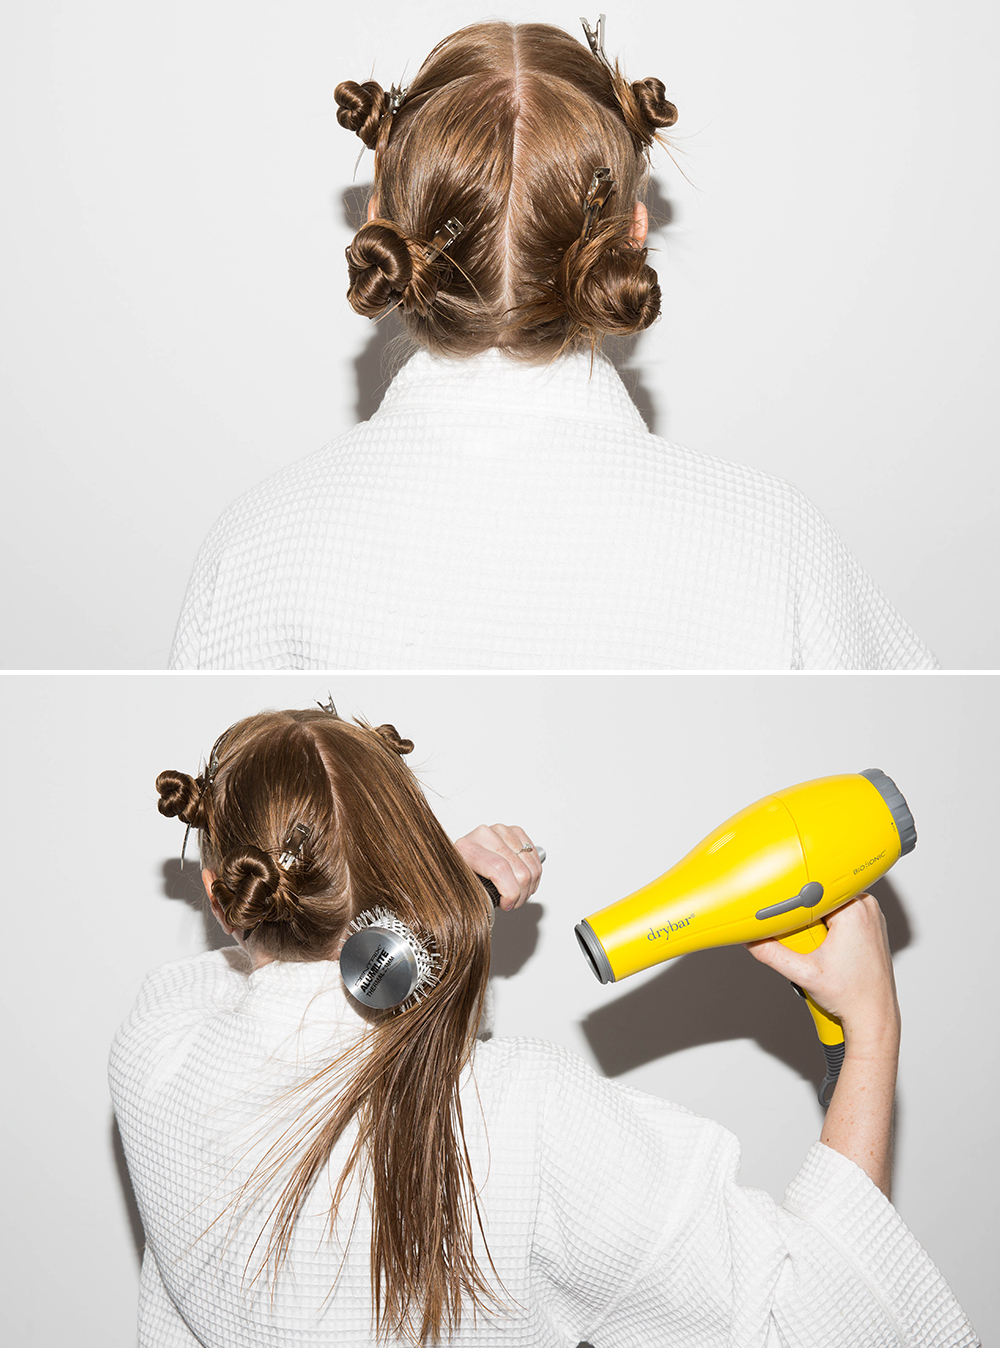 23 Life Altering Ways To Use A Blow Dryer